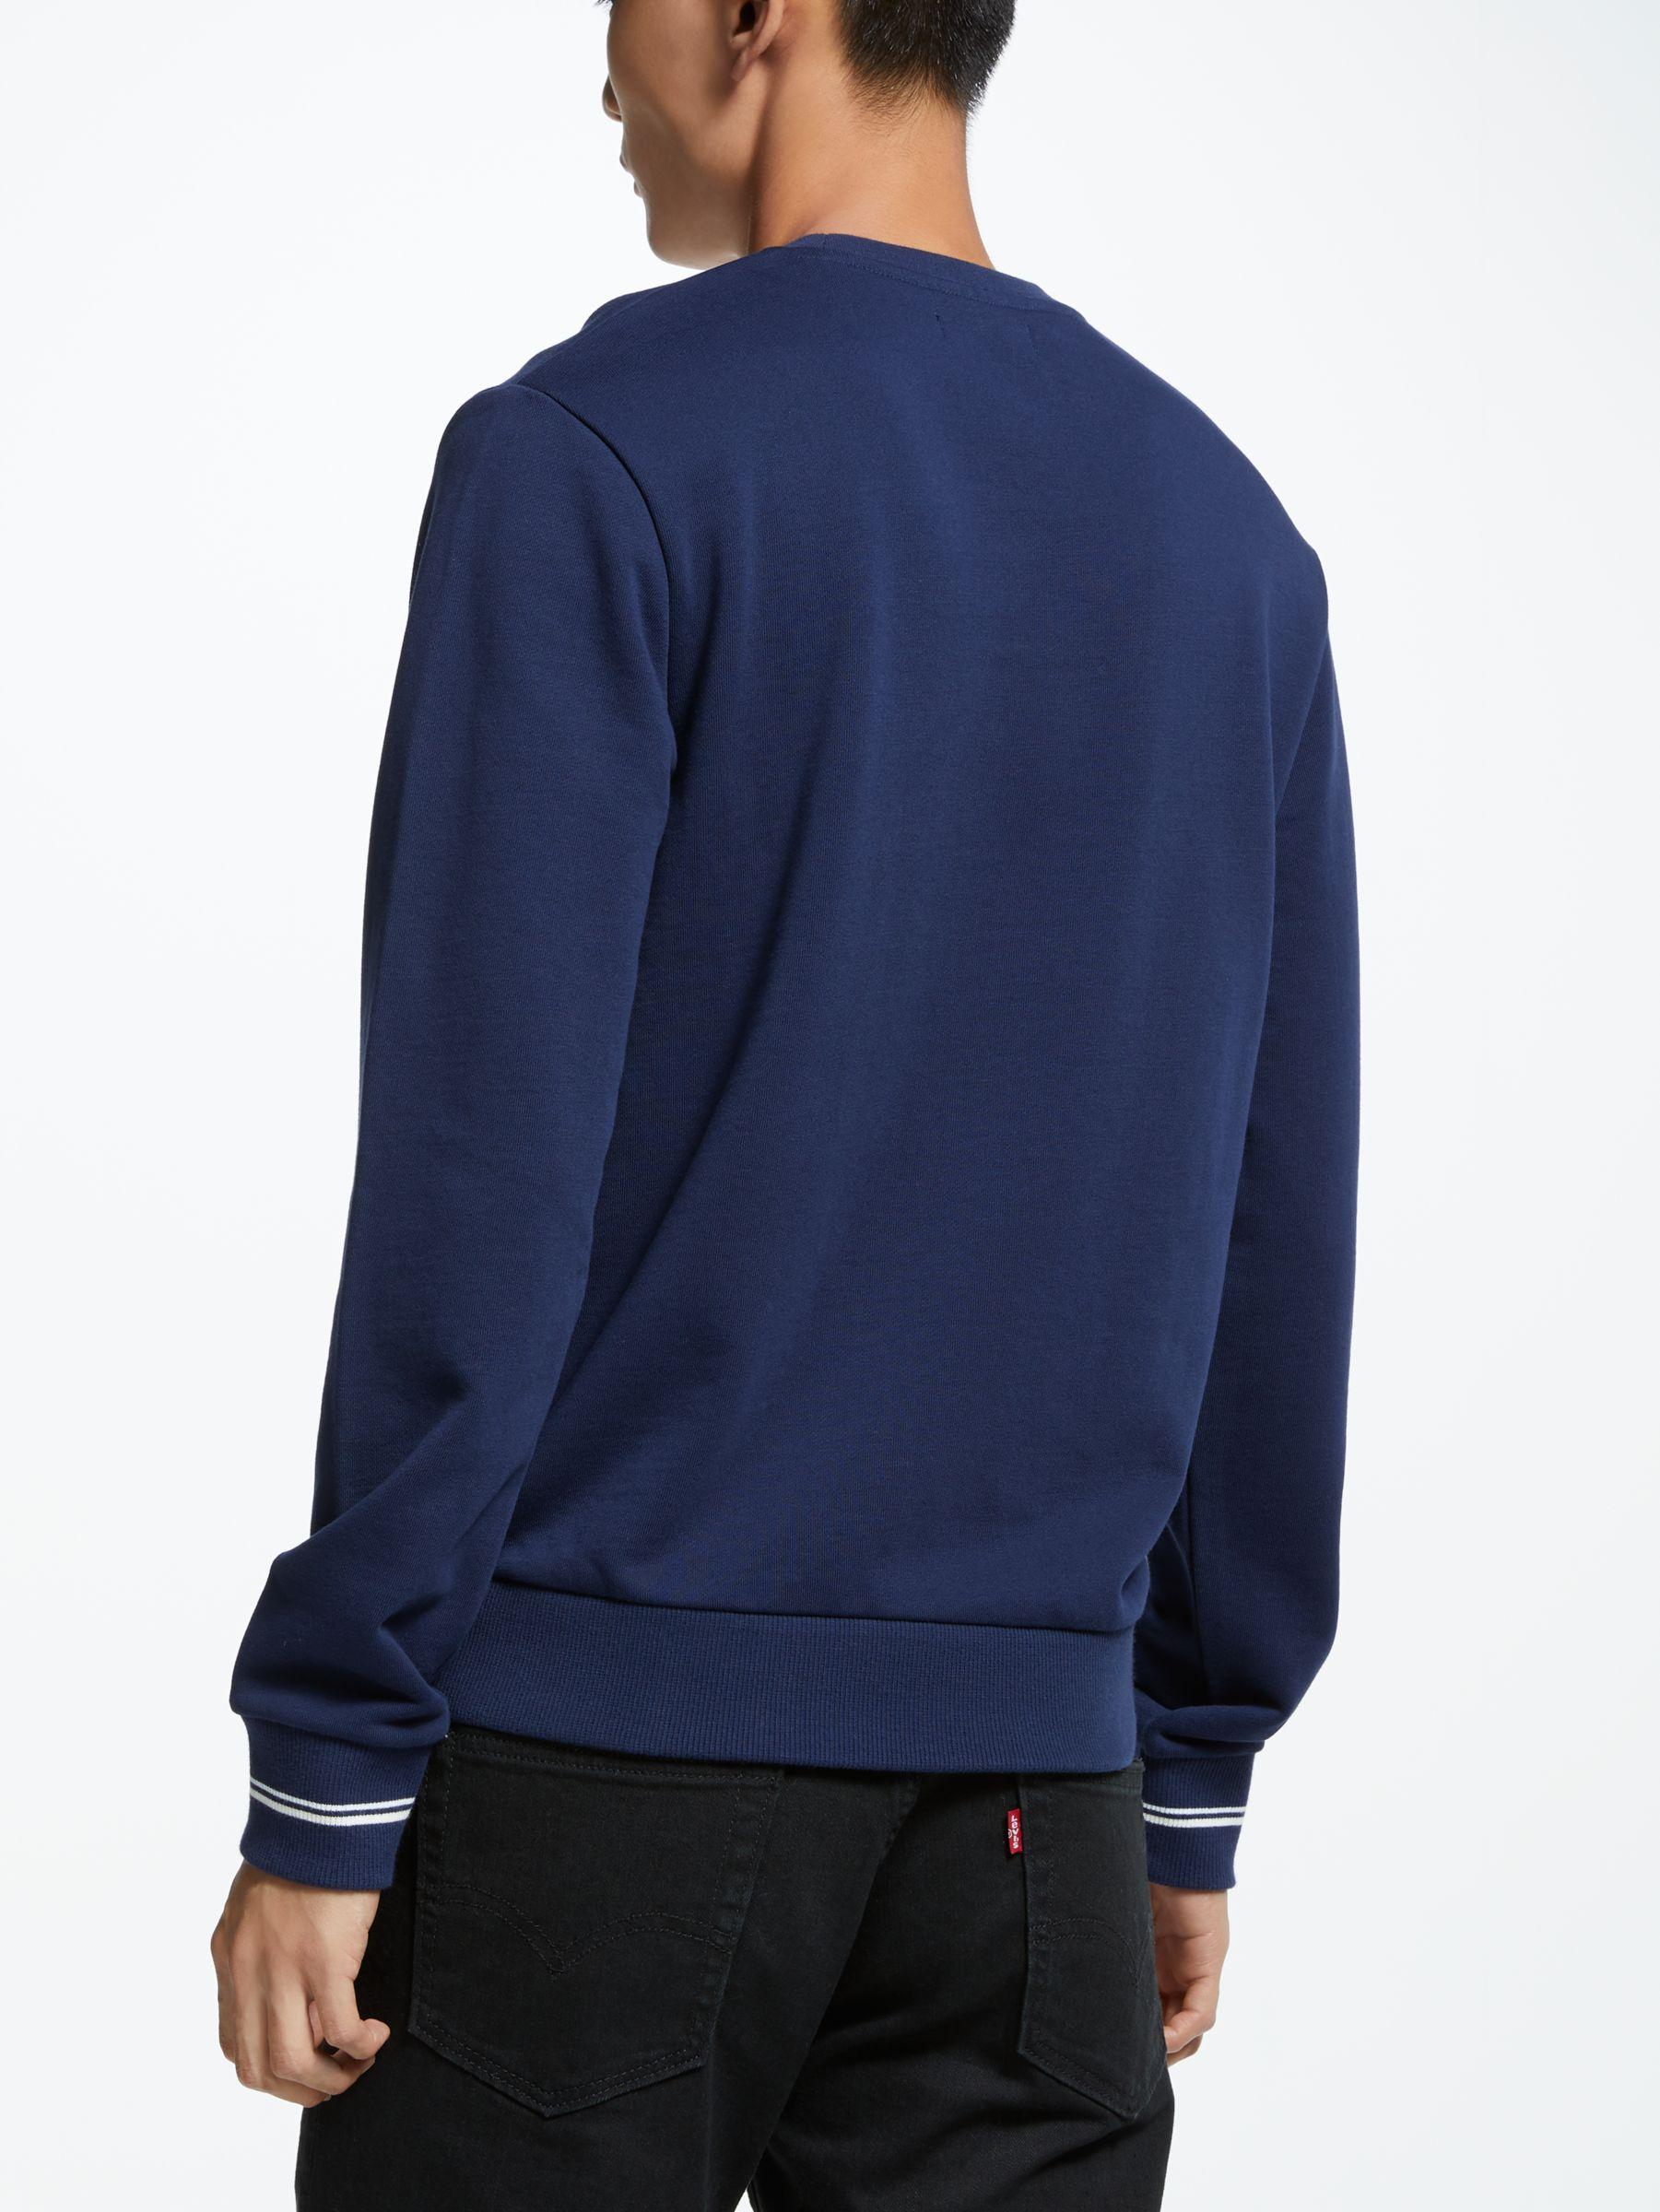 Fred Perry Cotton Crew Neck Sweatshirt in Carbon Blue (Blue) for Men